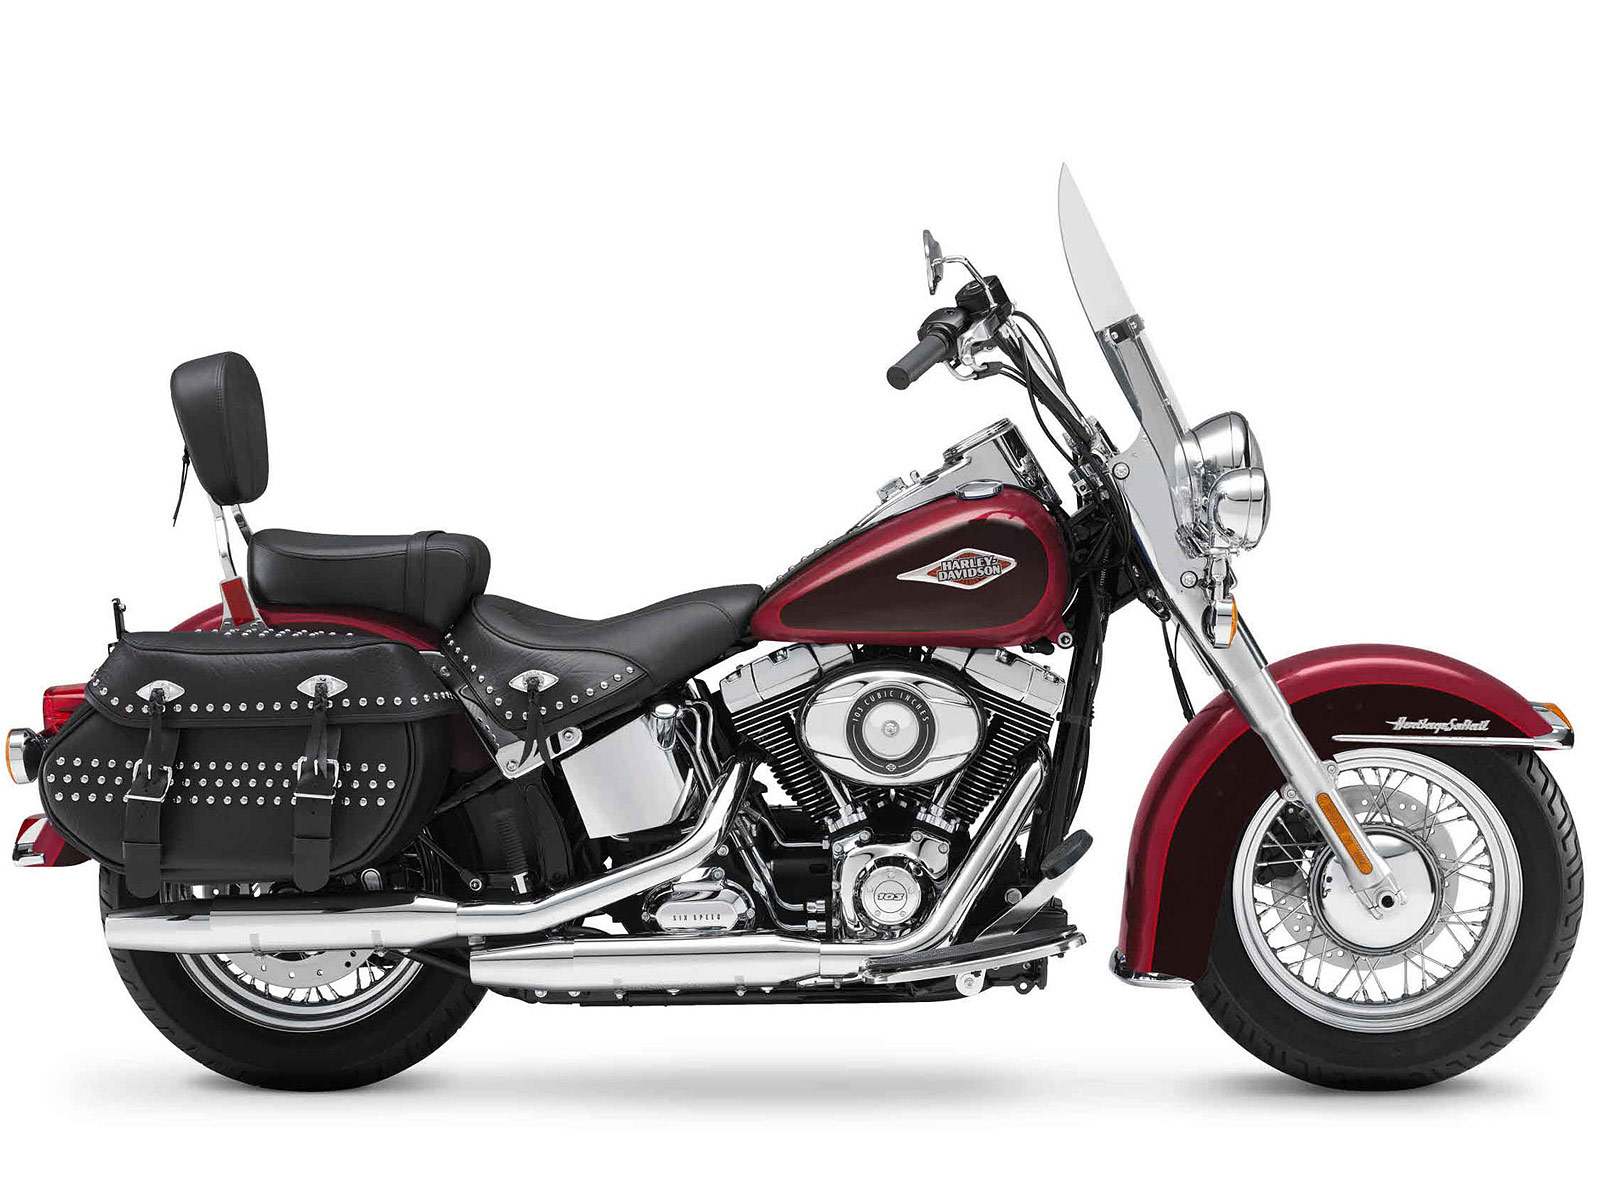 2012 flstc heritage softail classic harley davidson pictures. Black Bedroom Furniture Sets. Home Design Ideas